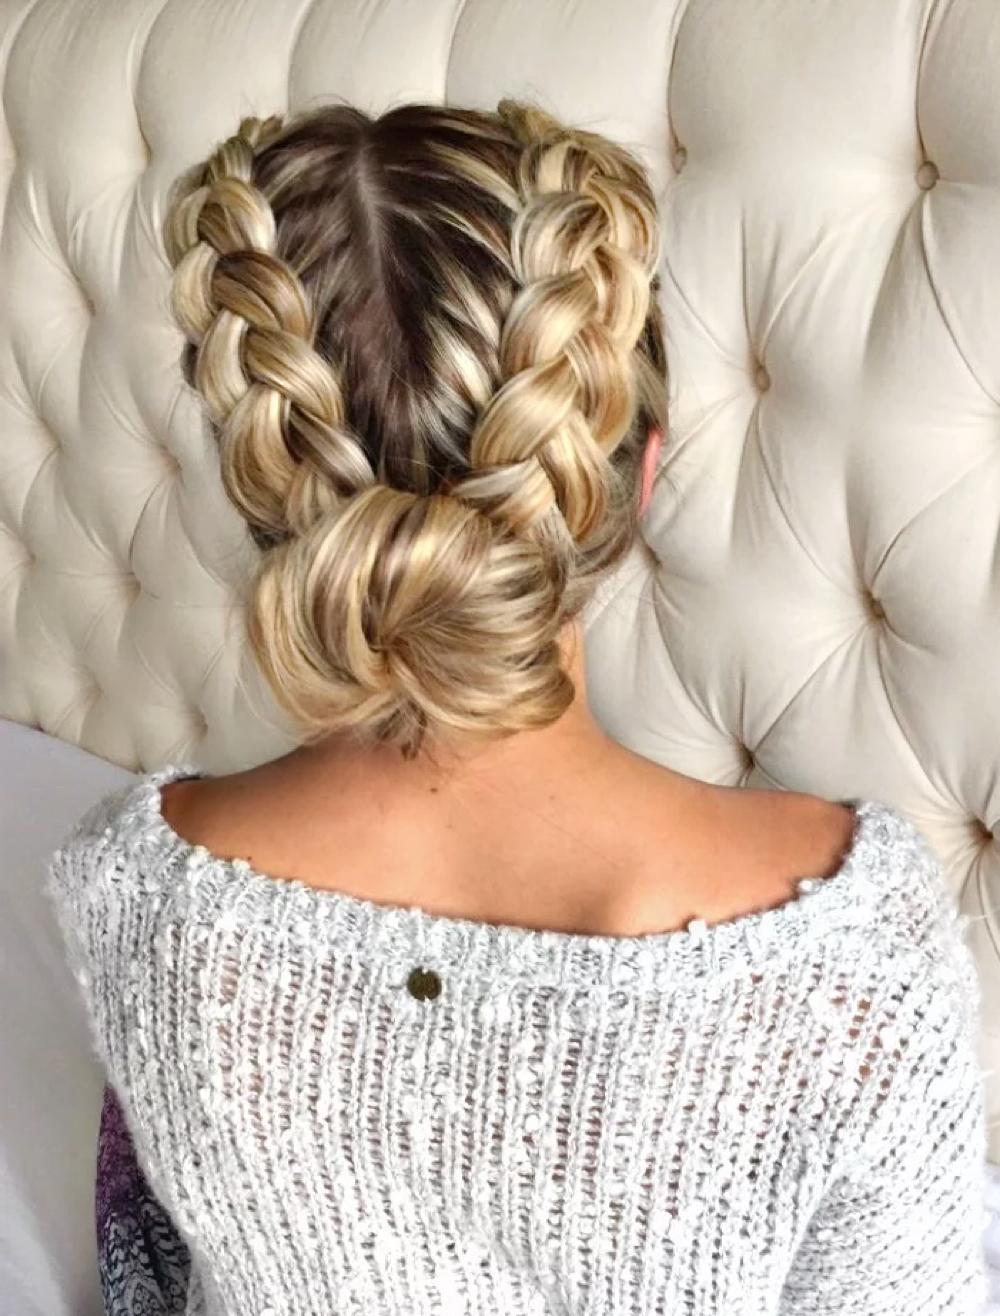 29 Gorgeous Braided Updo Ideas For 2019 With Regard To Widely Used Double Twist Bun Updo Hairstyles (View 11 of 20)